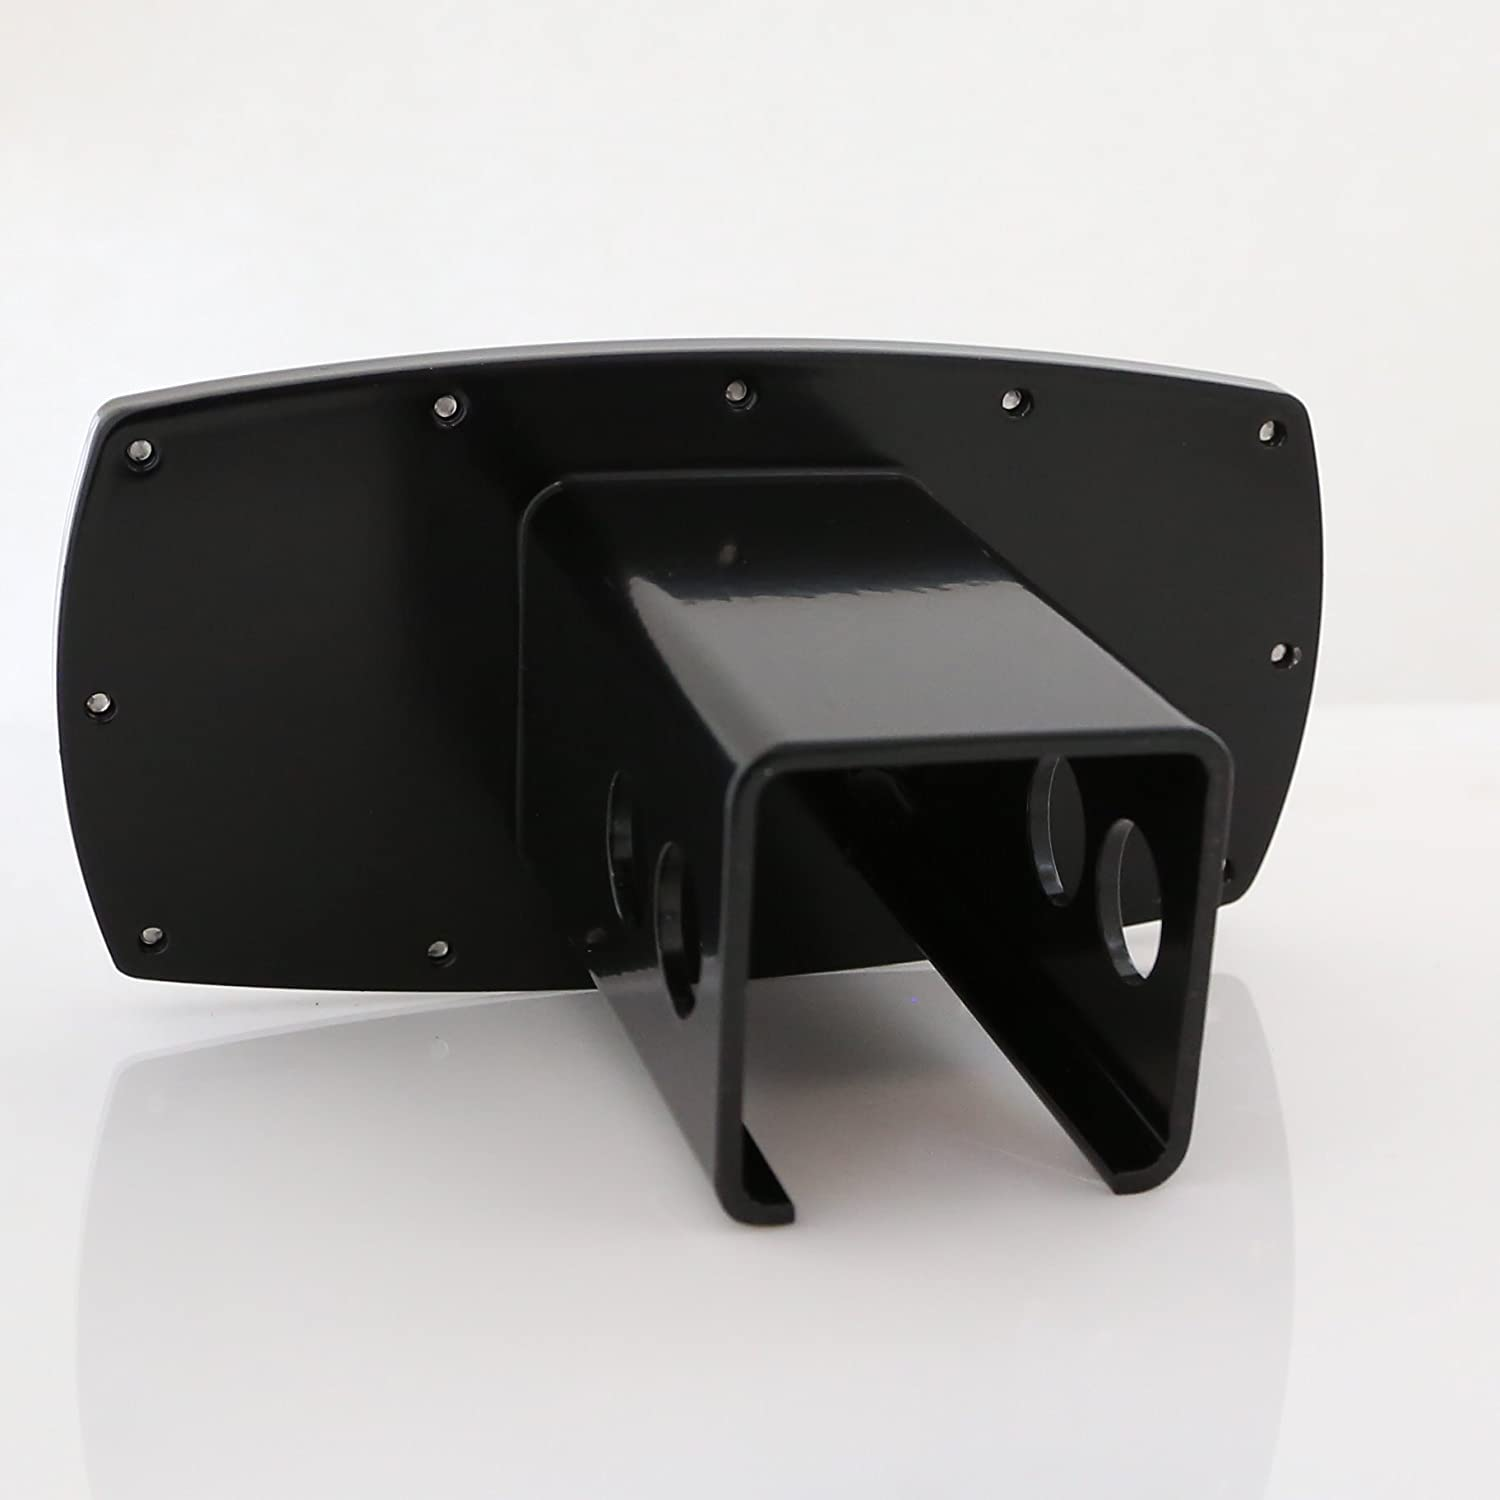 HEMI Black Trim Billet Aluminum Tow Hitch Cover for Dodge Jeep RAM by Dodge CarBeyondStore